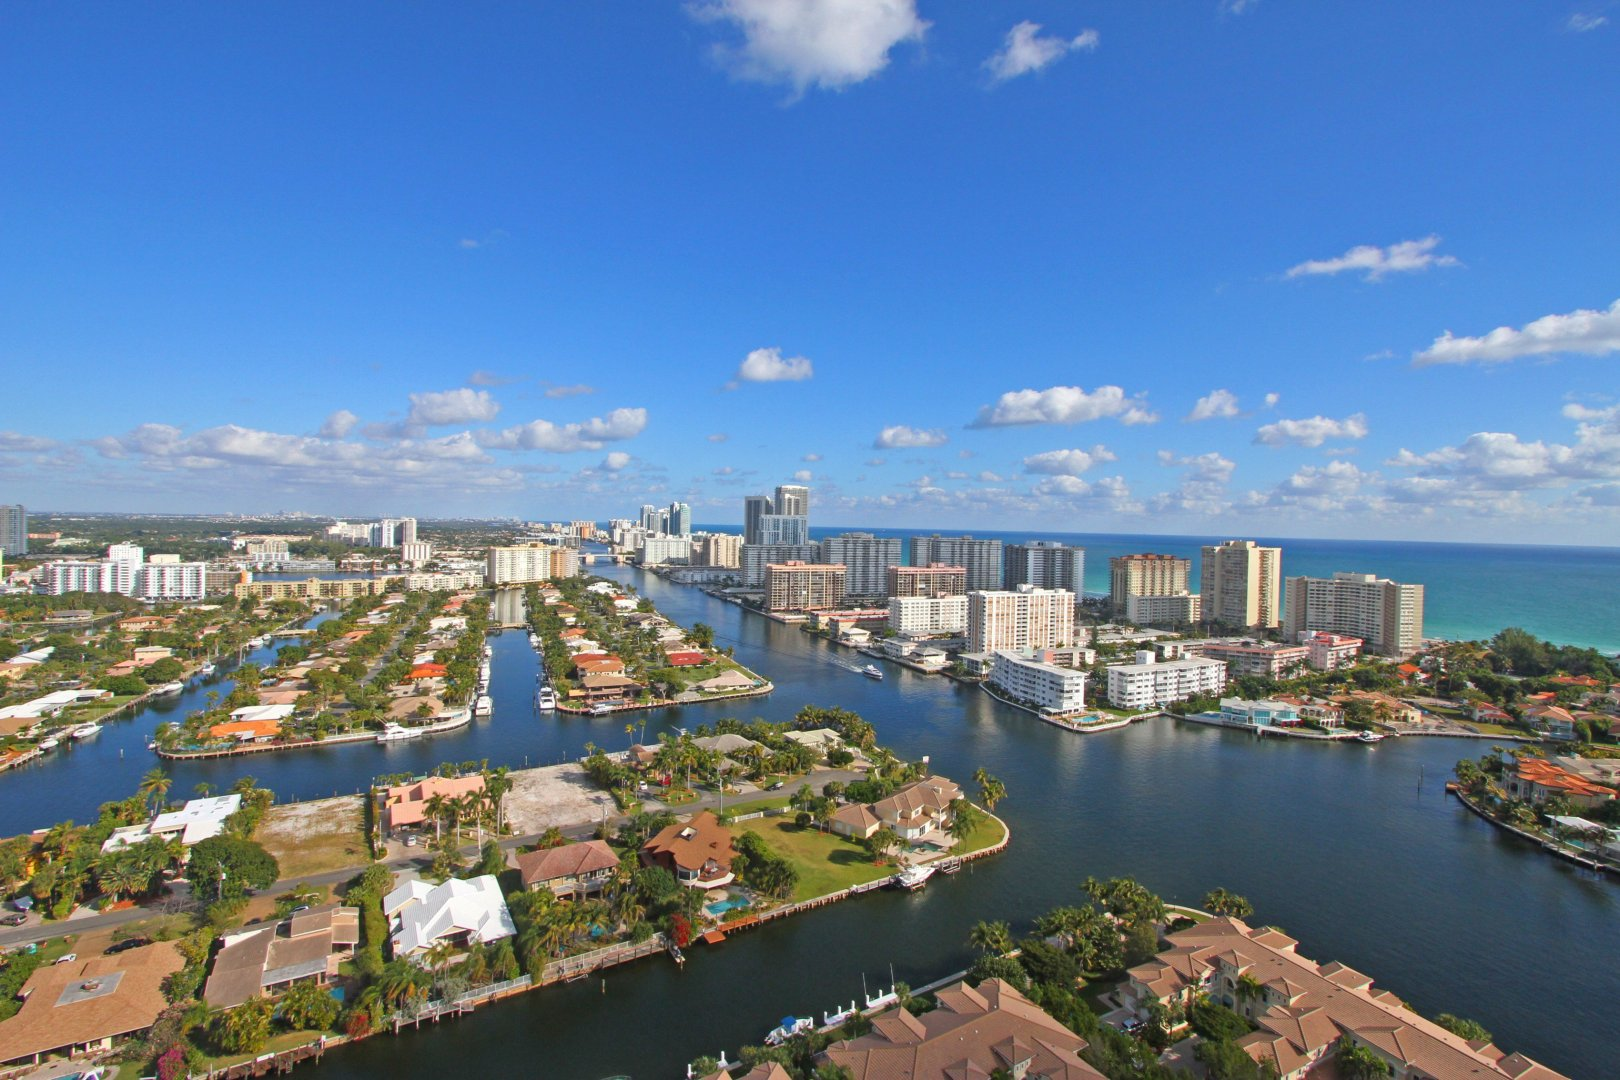 21200 Point Place #2804, Unit #2804 Luxury Real Estate